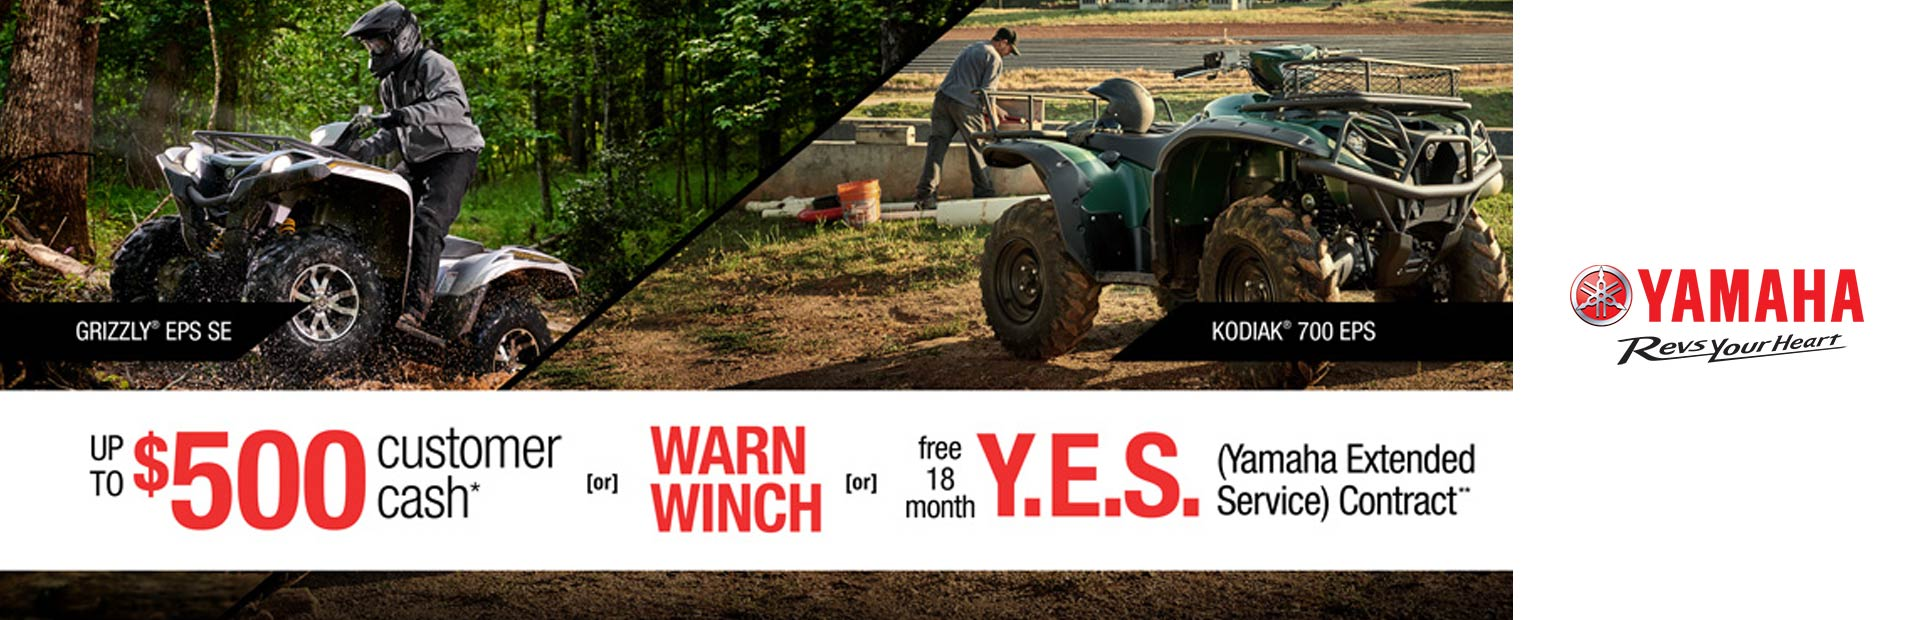 Yamaha: Free Warn Vantage Winch -or- 18 Month Y.E.S. (ATV)